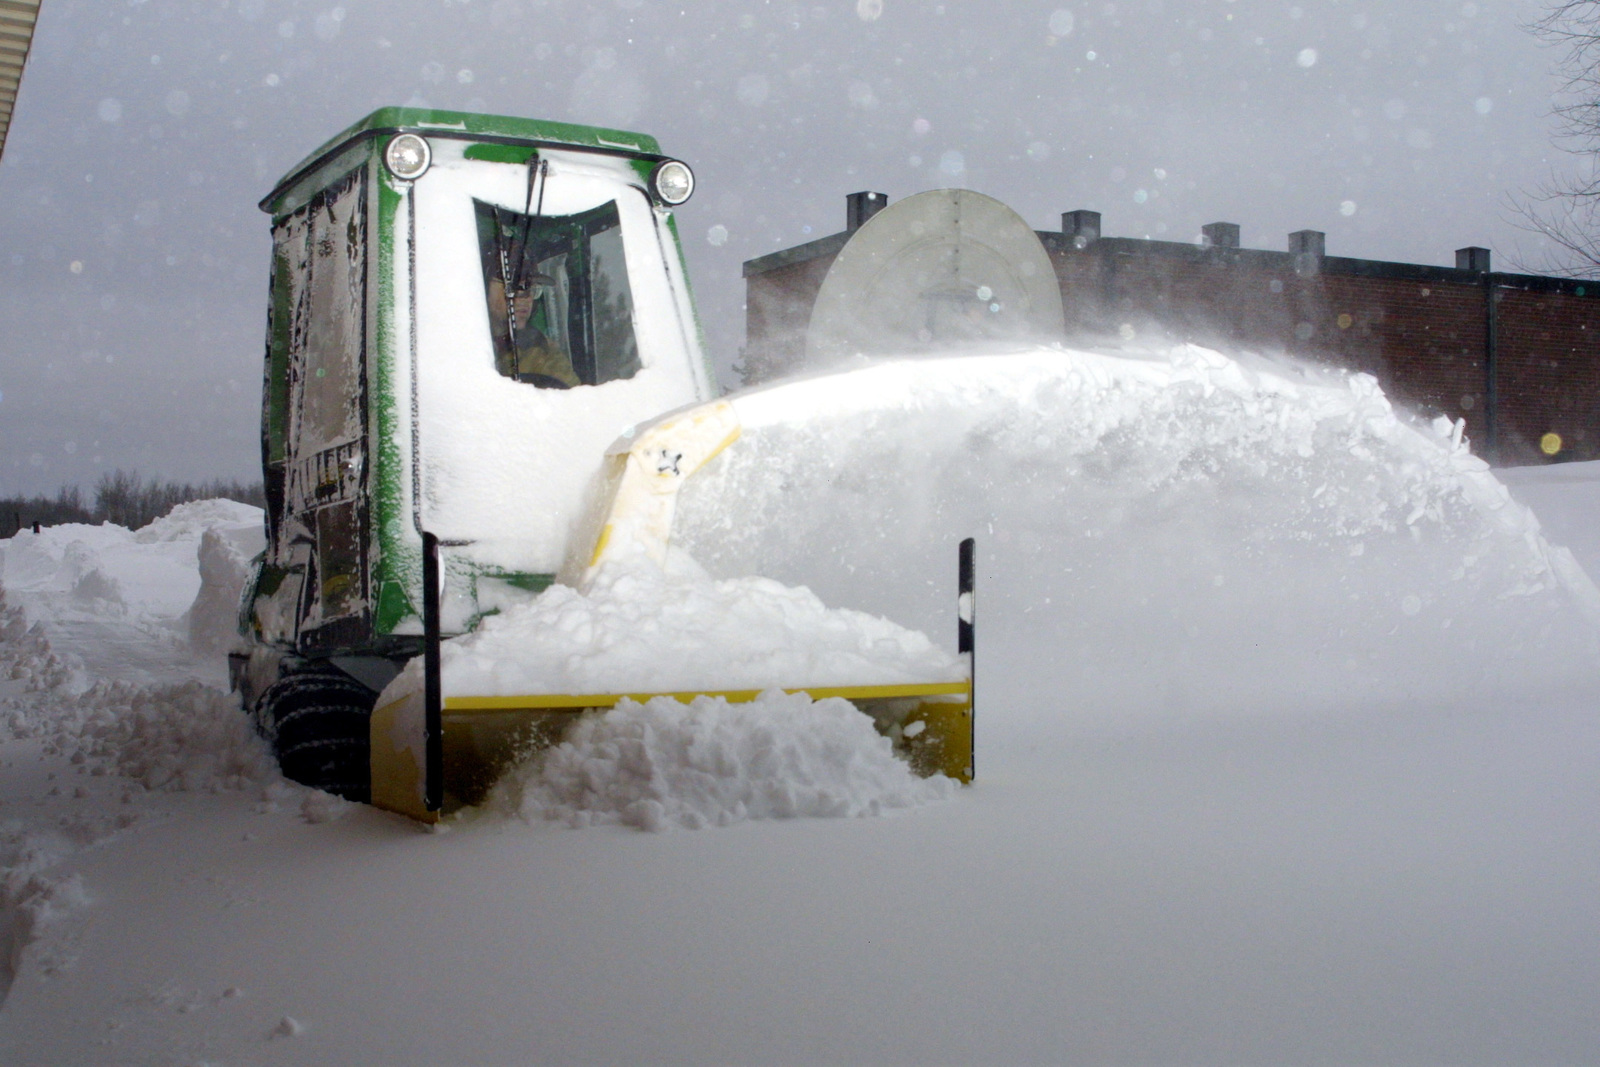 US Air Force (USAF) Technical Sergeant (TSGT) Michael Anderson, 148th Fighter Wing (FW) Minnesota Air National Guard (ANG) operates a John Deere F 911 snow blower at Duluth International Airport (IAP), Minnesota (MN)